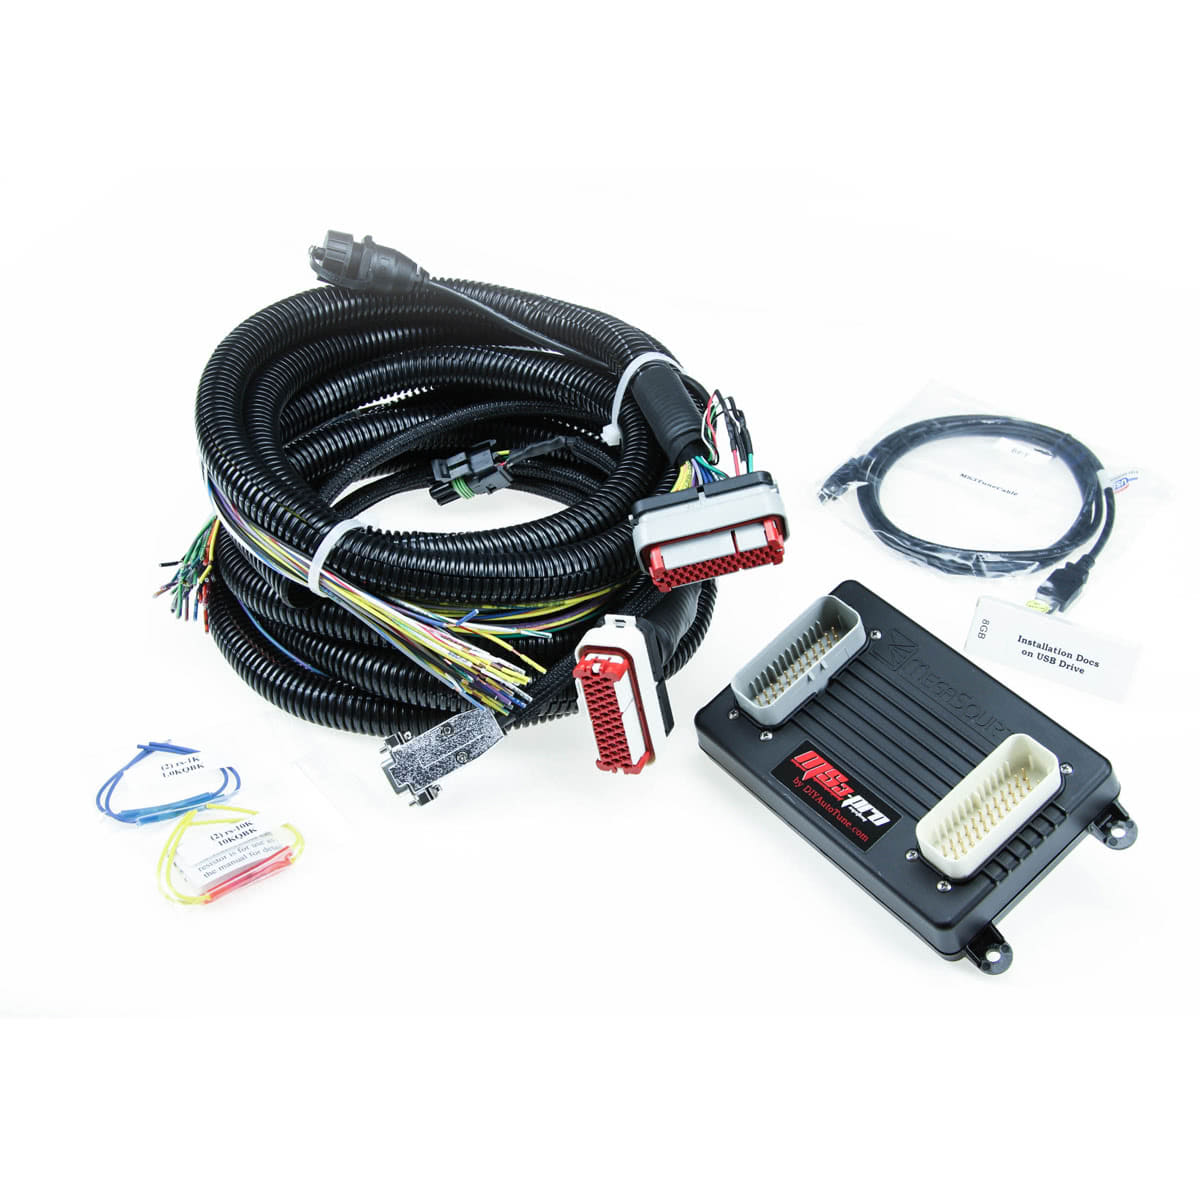 MS3Pro Pkg1_3 ms3pro evo standalone ecu with 8' wiring harness 5.7 hemi stand alone wiring harness at panicattacktreatment.co